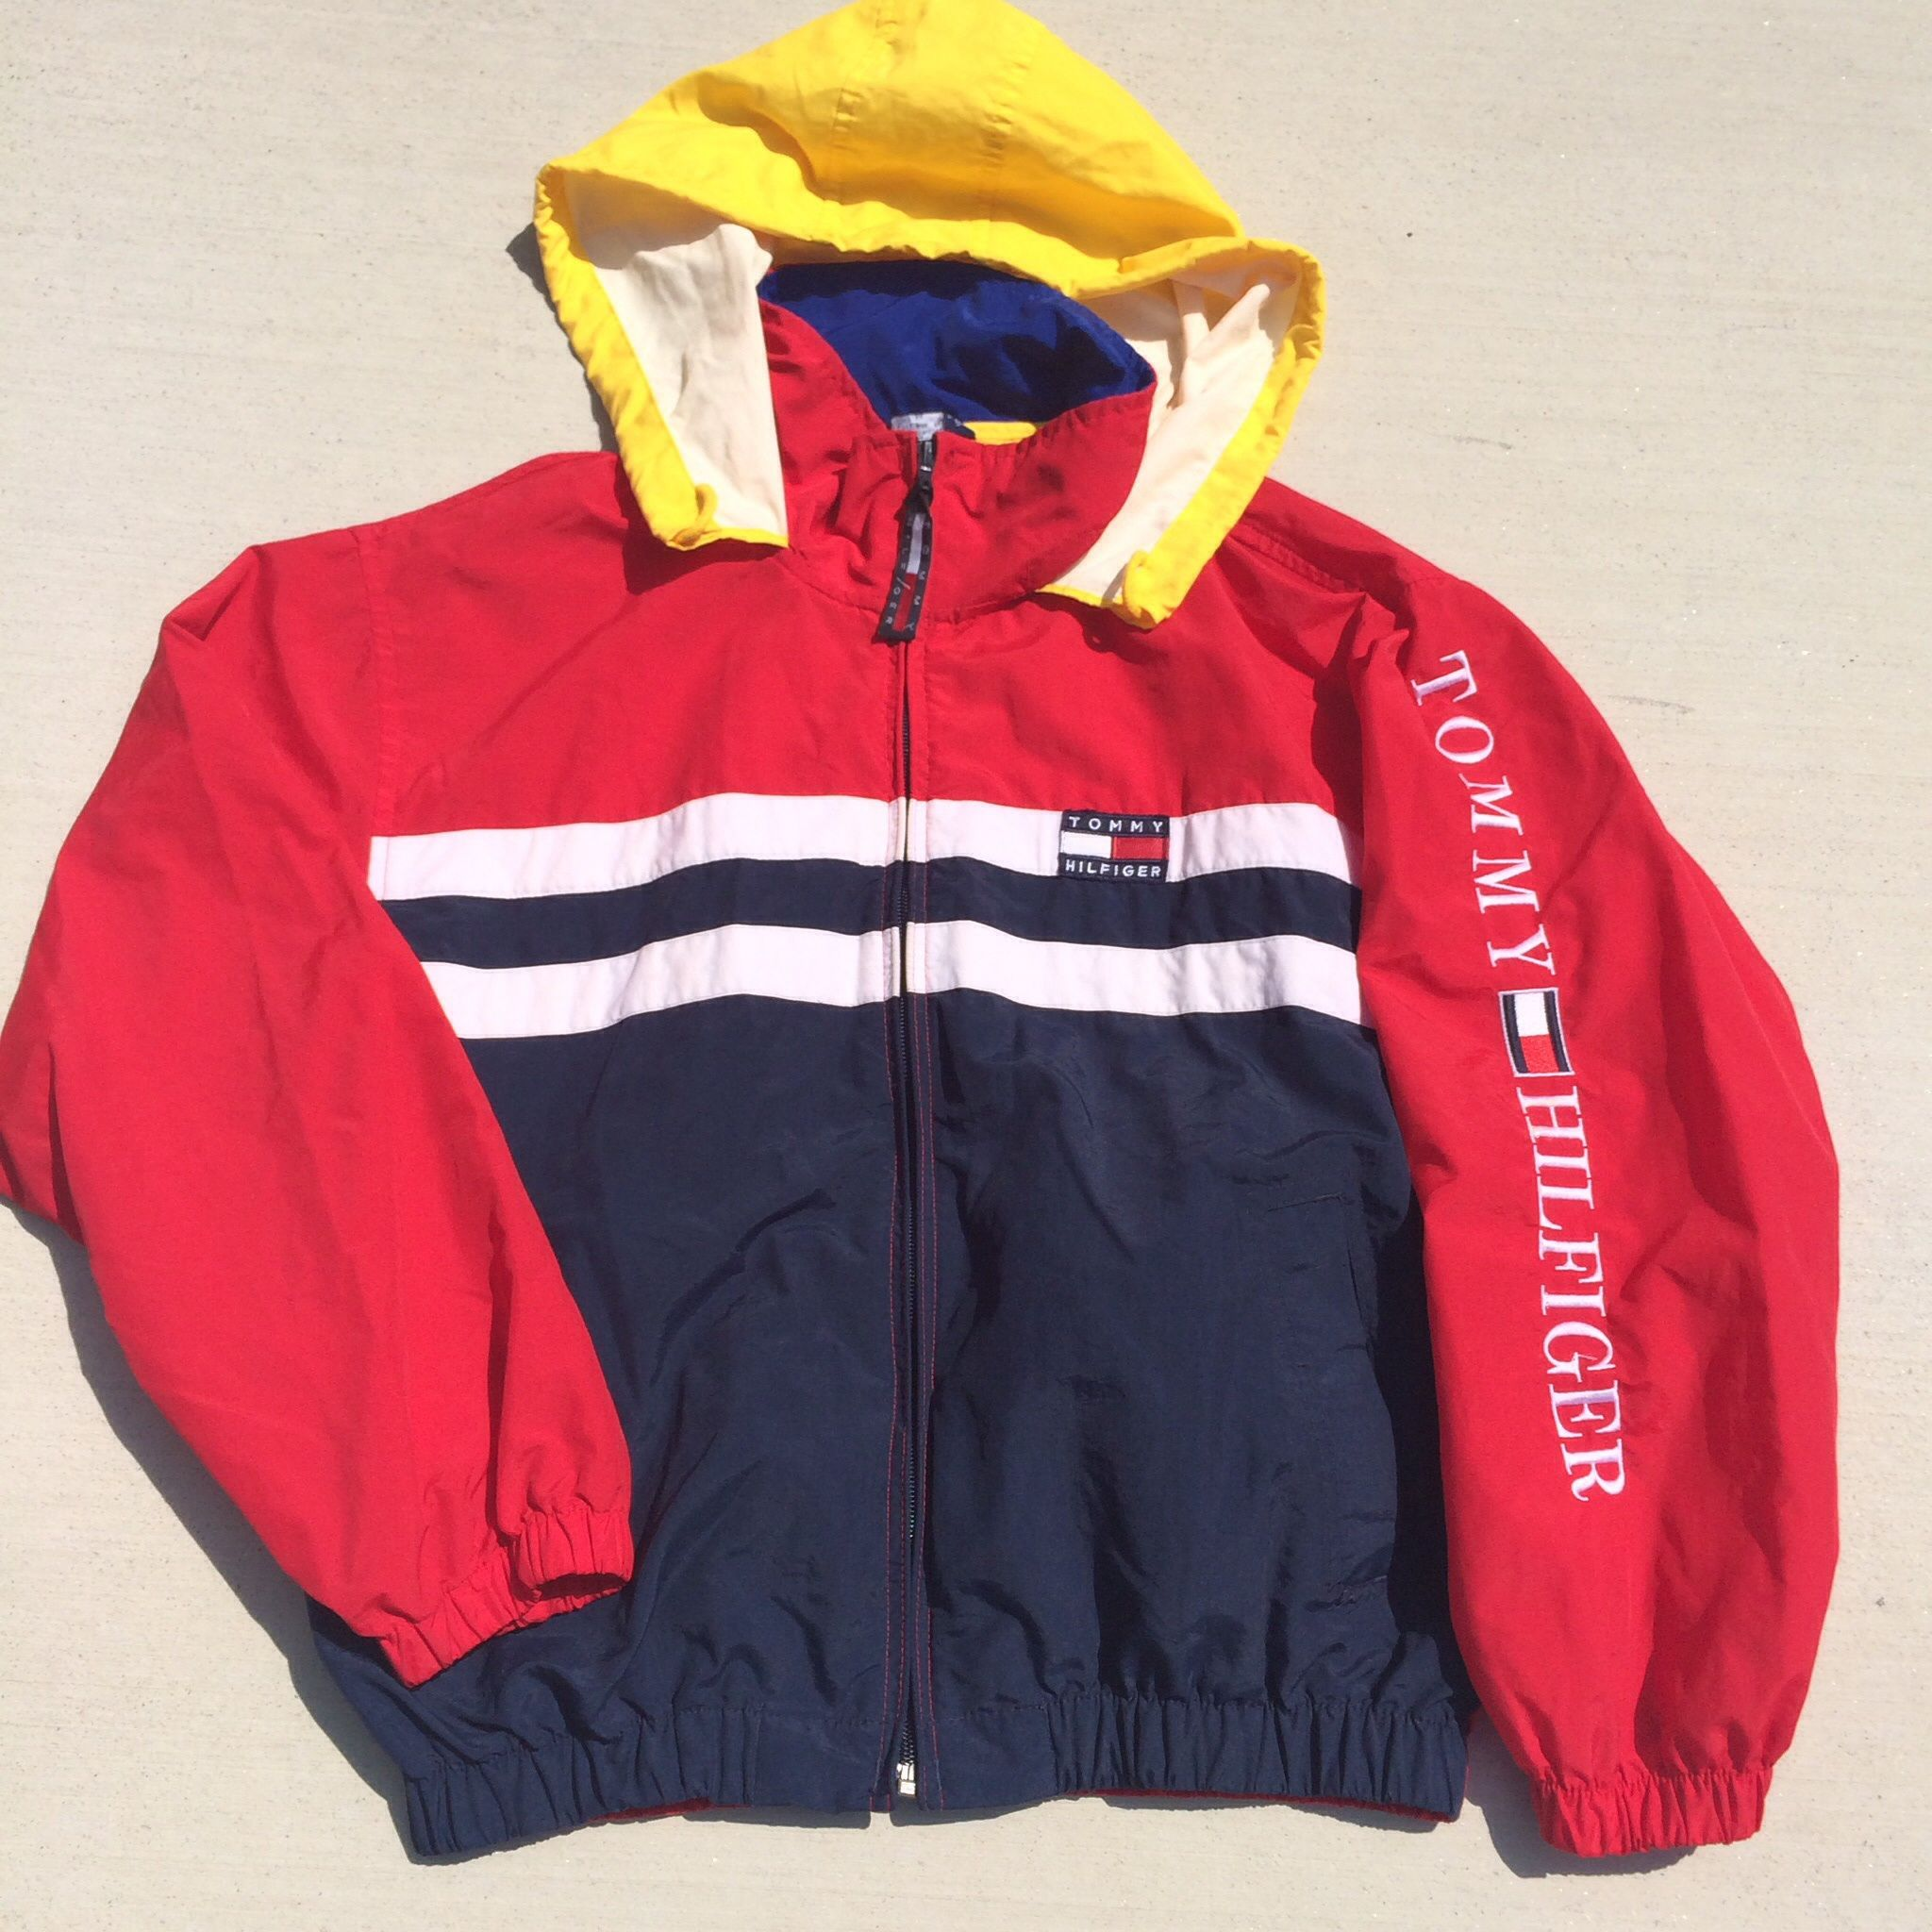 TOMMY HILFIGER Windbreaker jacket Blue Size XL k8ub8gp